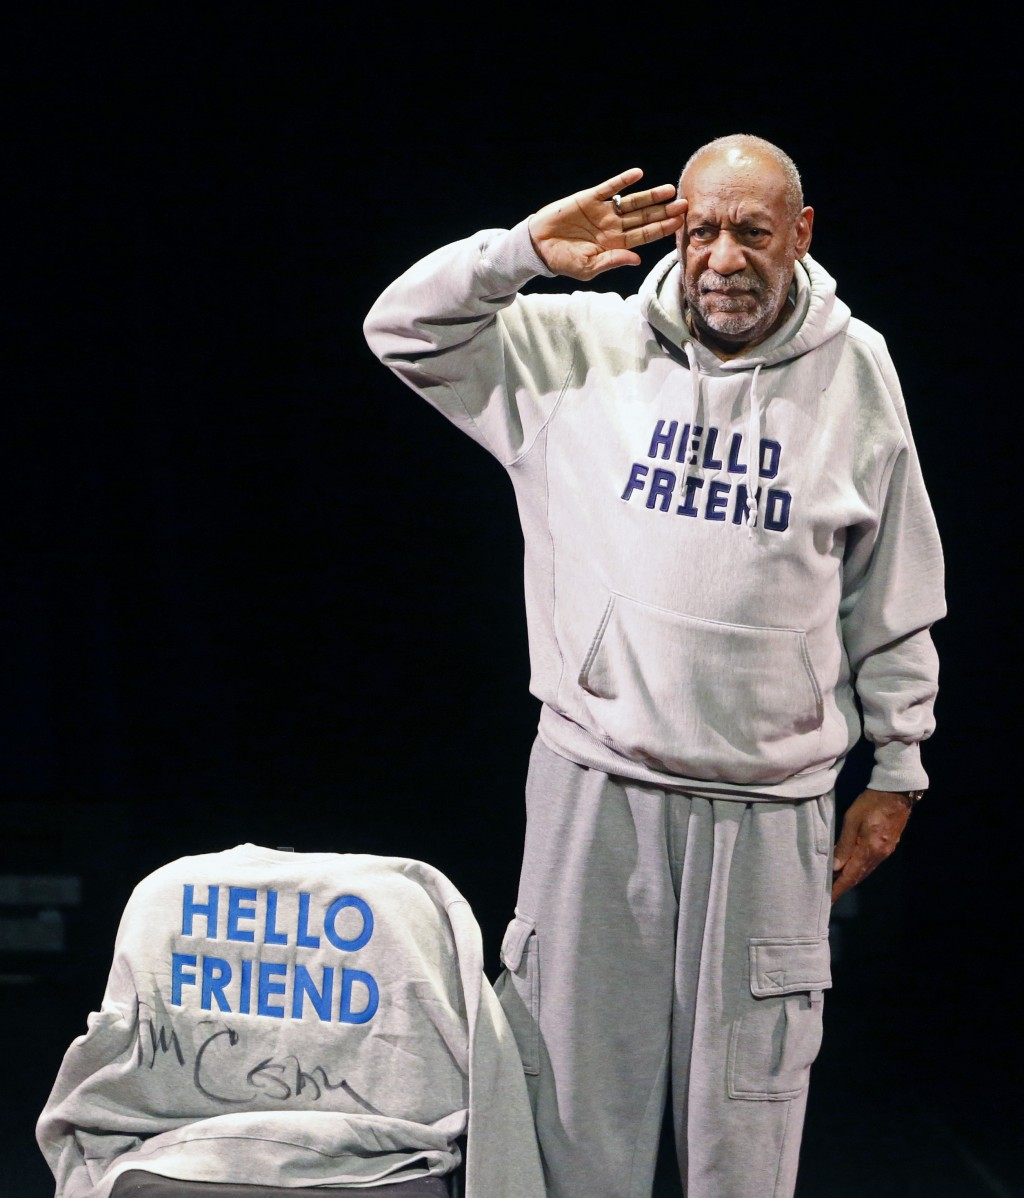 FILE - In this Jan. 17, 2015 file photo, comedian Bill Cosby salutes the crowd as he begins a performance in Denver. On Thursday, April 26, 2018, Cosb...